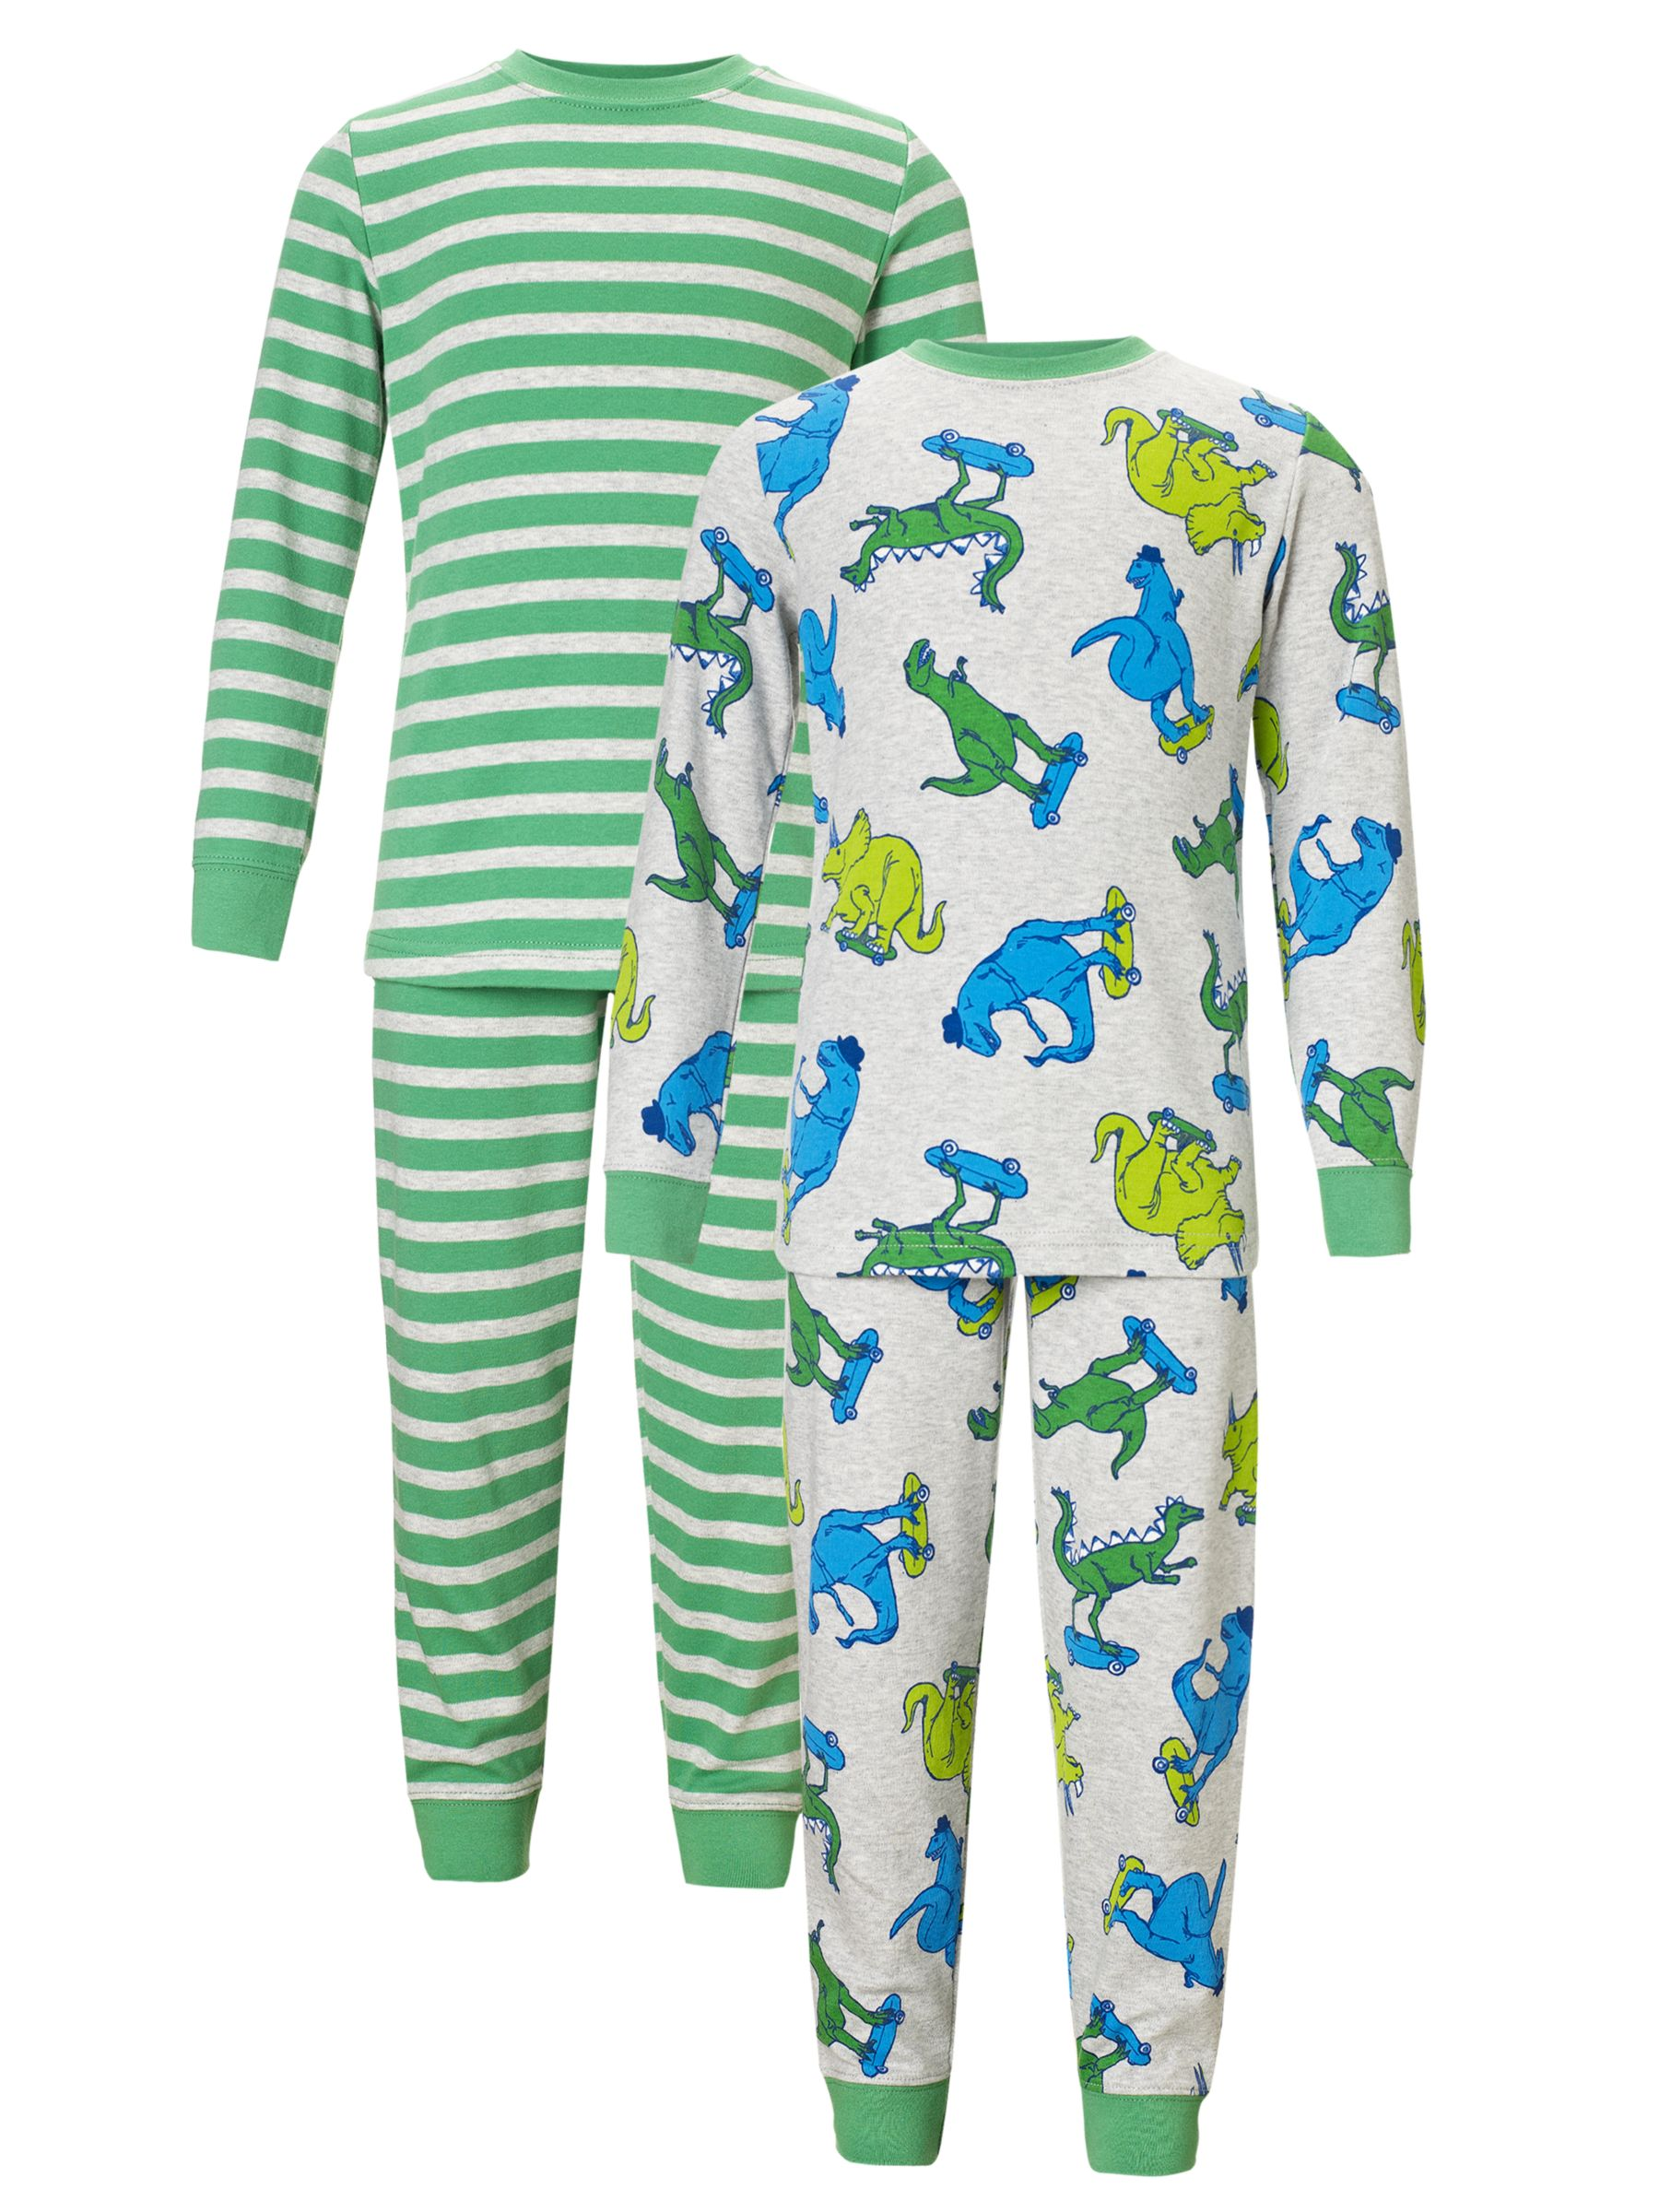 John Lewis Boy Dino Stripe Pyjamas, Pack of 2, Green/Grey